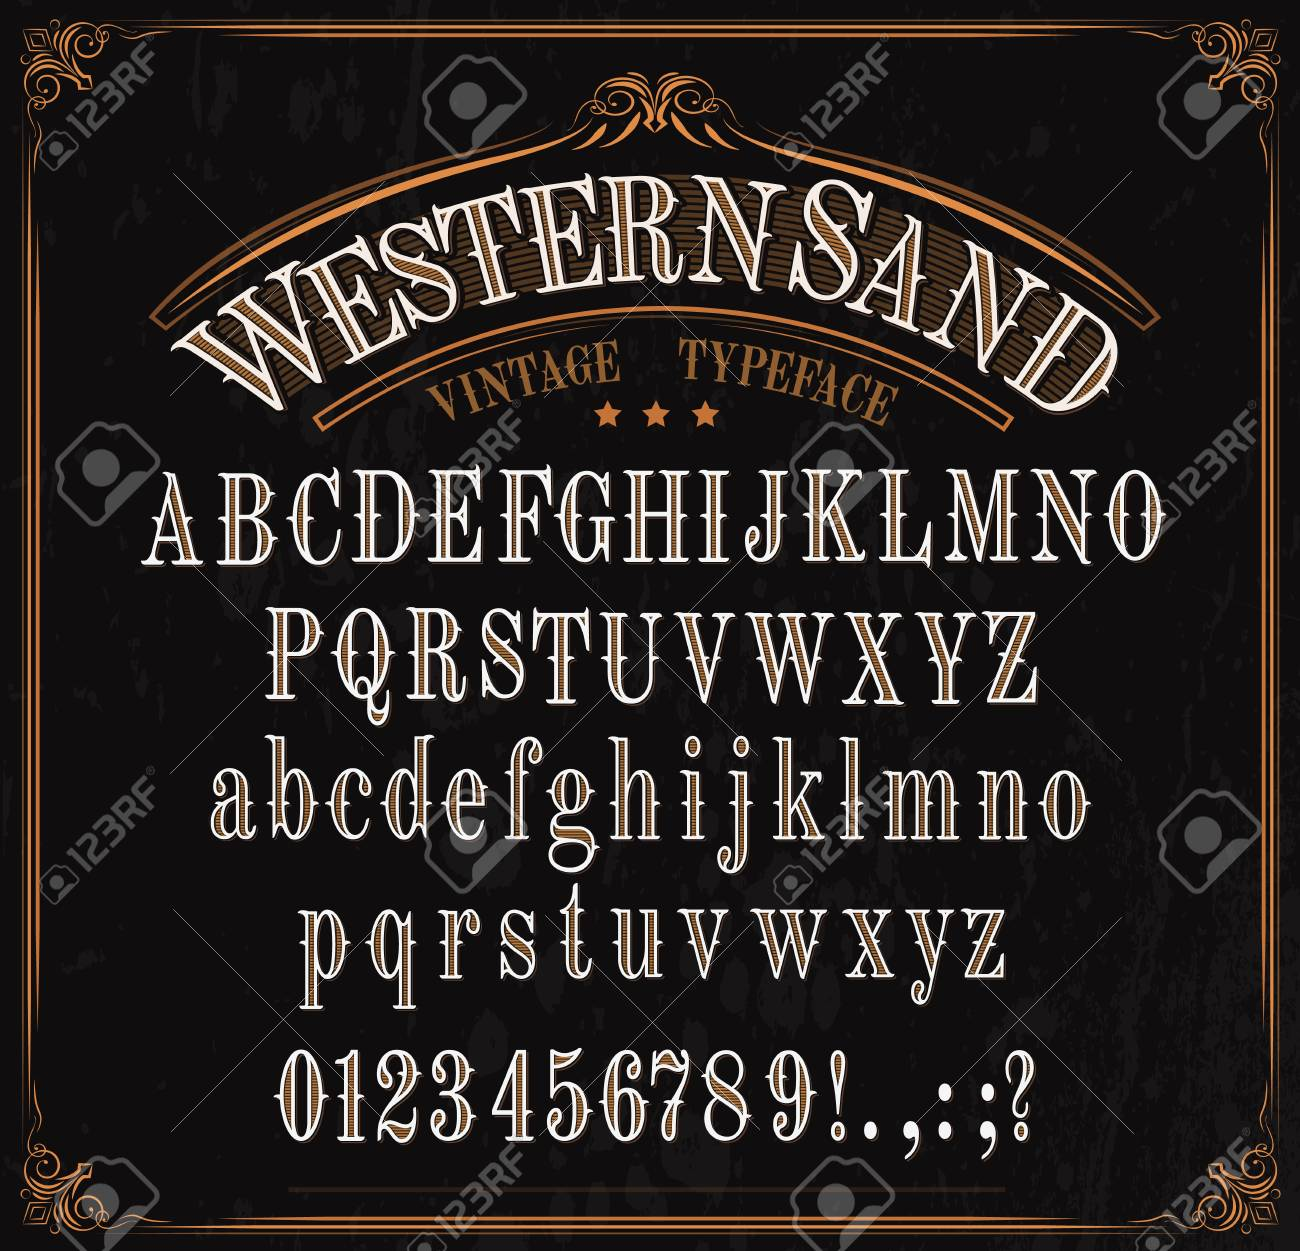 https://previews.123rf.com/images/seamartini/seamartini1905/seamartini190500326/123675607-western-font-letters-vector-vintage-typeface-in-retro-vignette-frame-english-abc-uppercase-and-lower.jpg